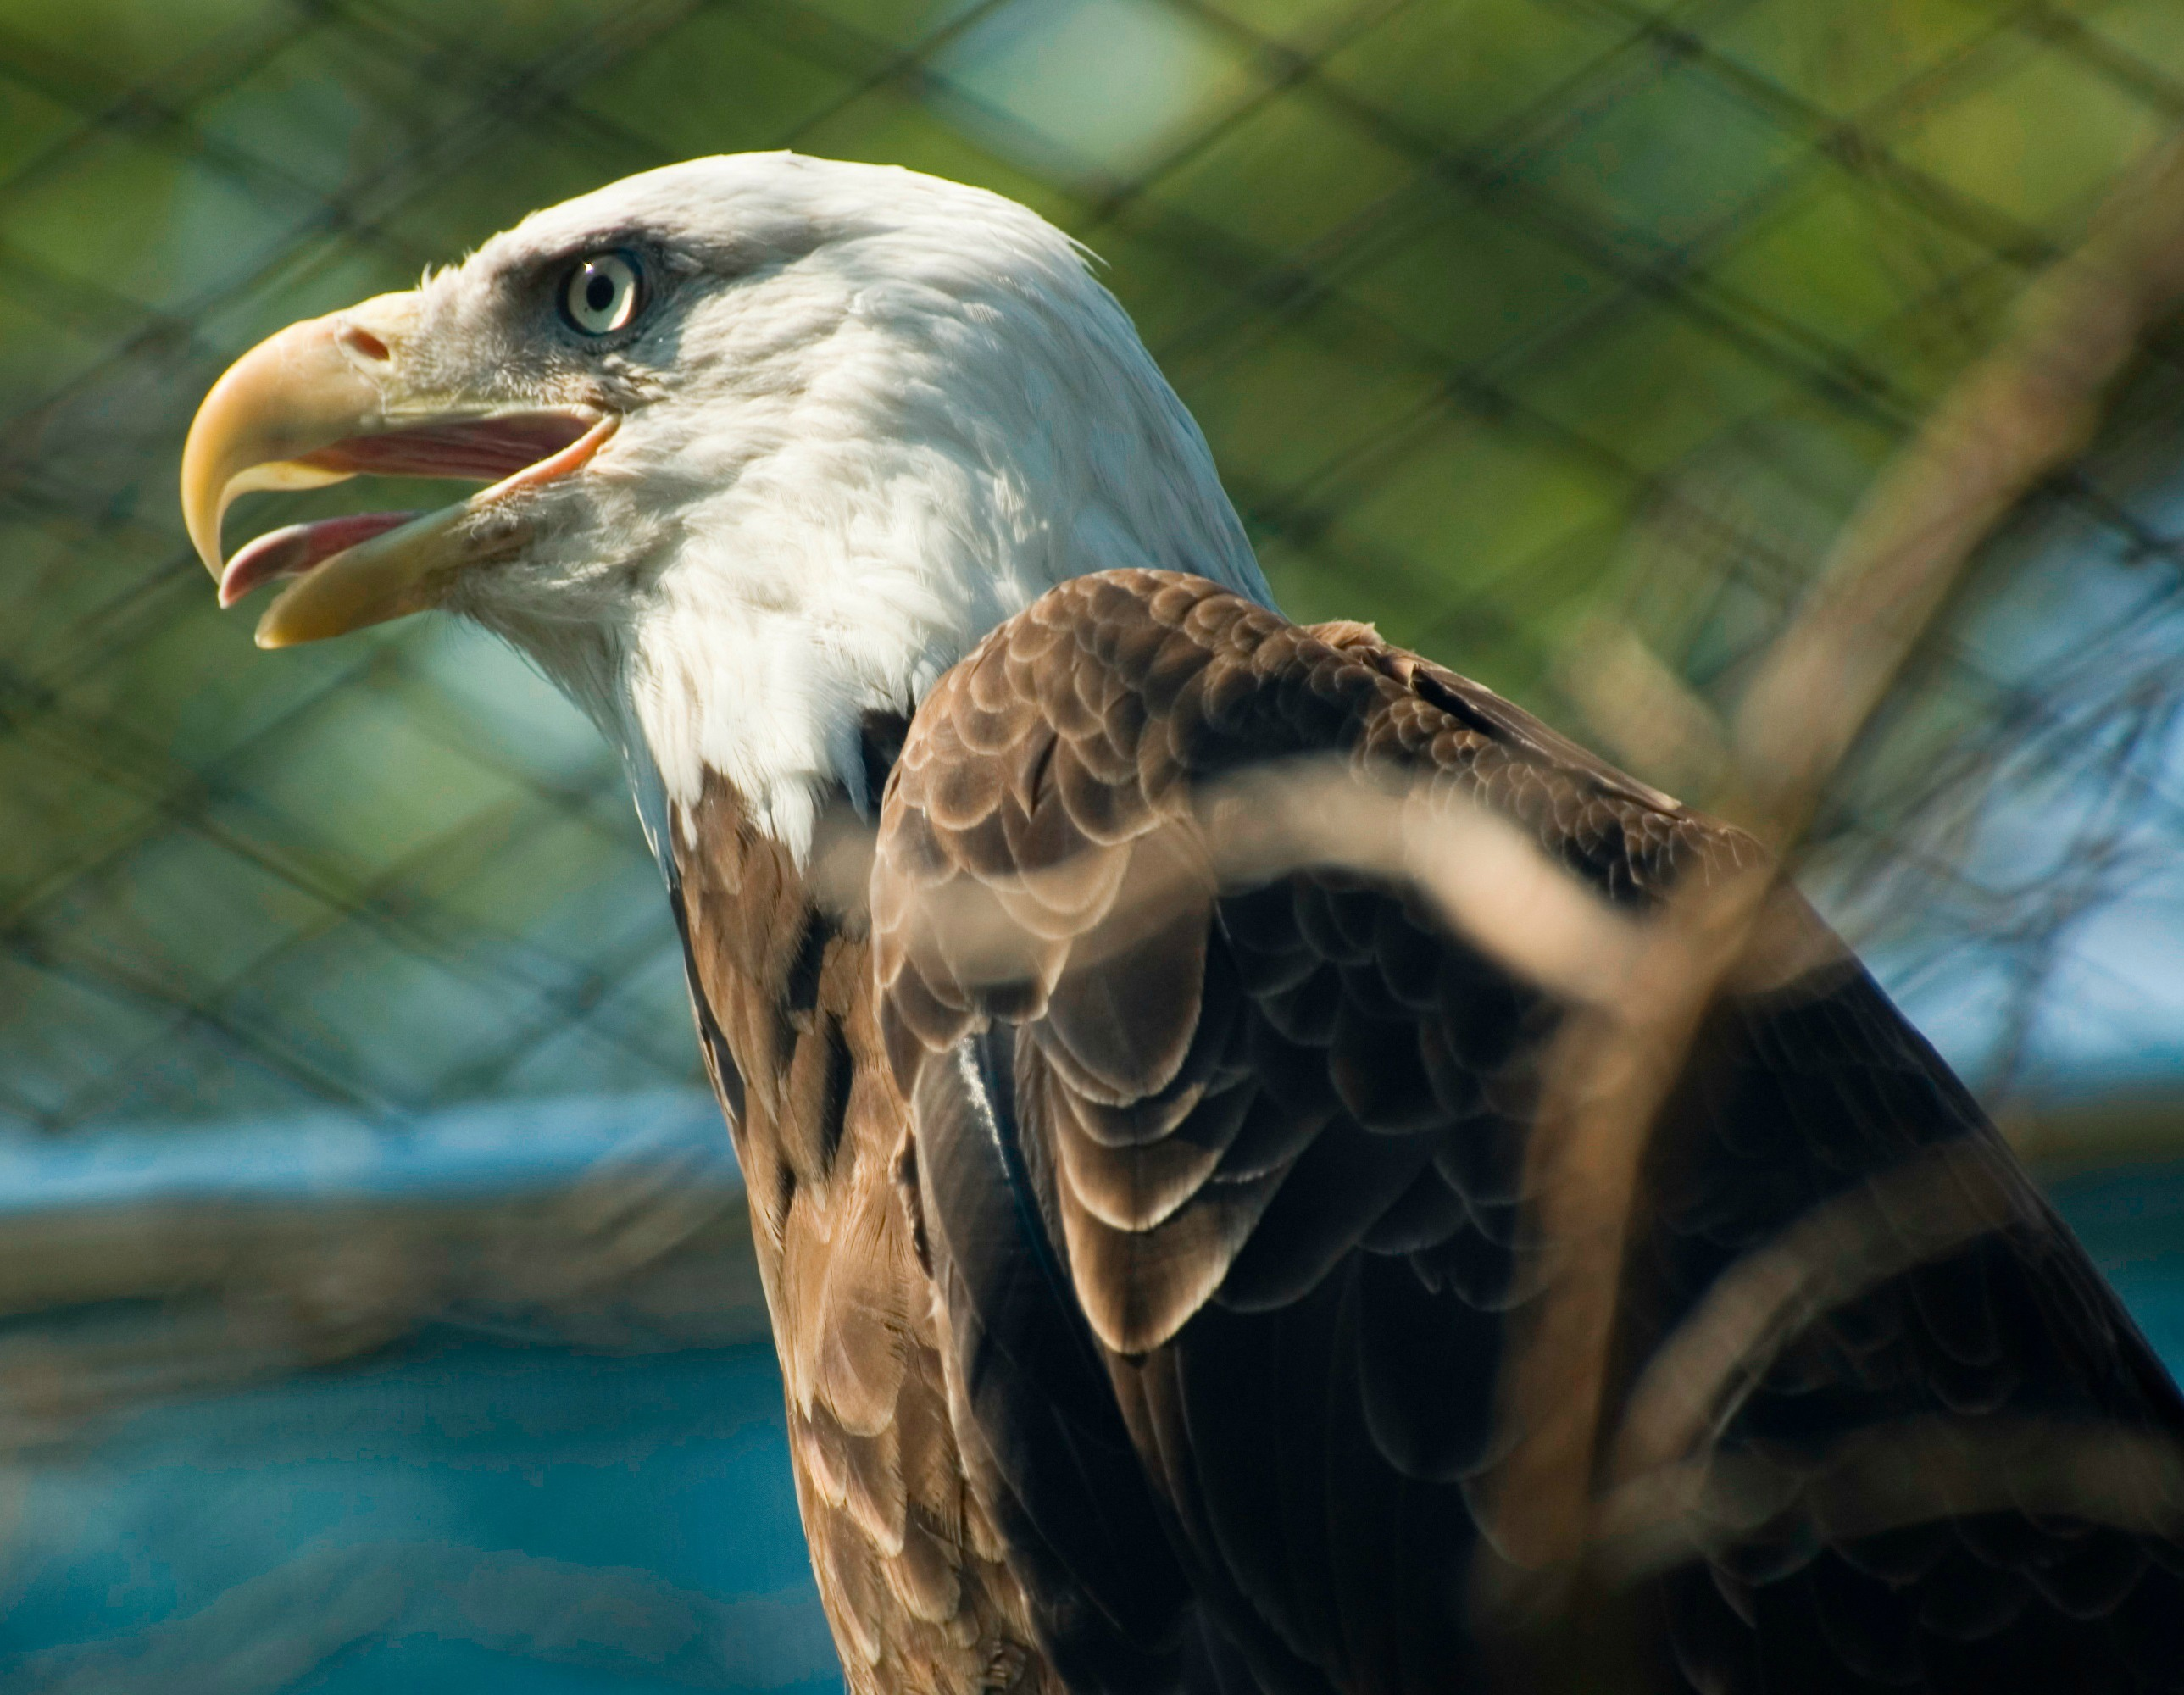 things to do in new jersey - visit the cape may zoo! - things to do